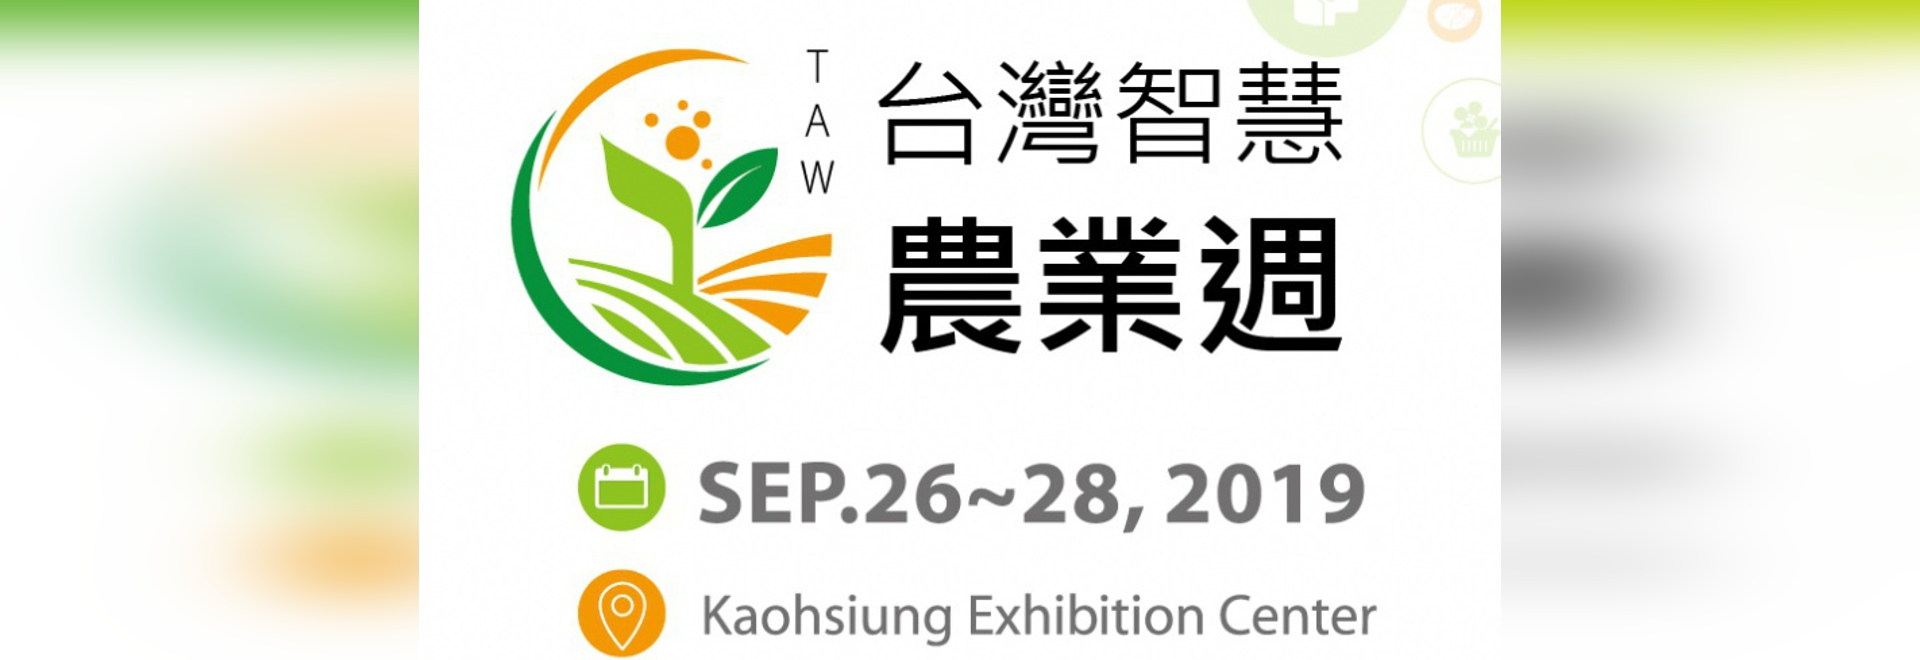 Taiwan Smart Agriweek 2019 a gateway into Asia Pacific agriculture